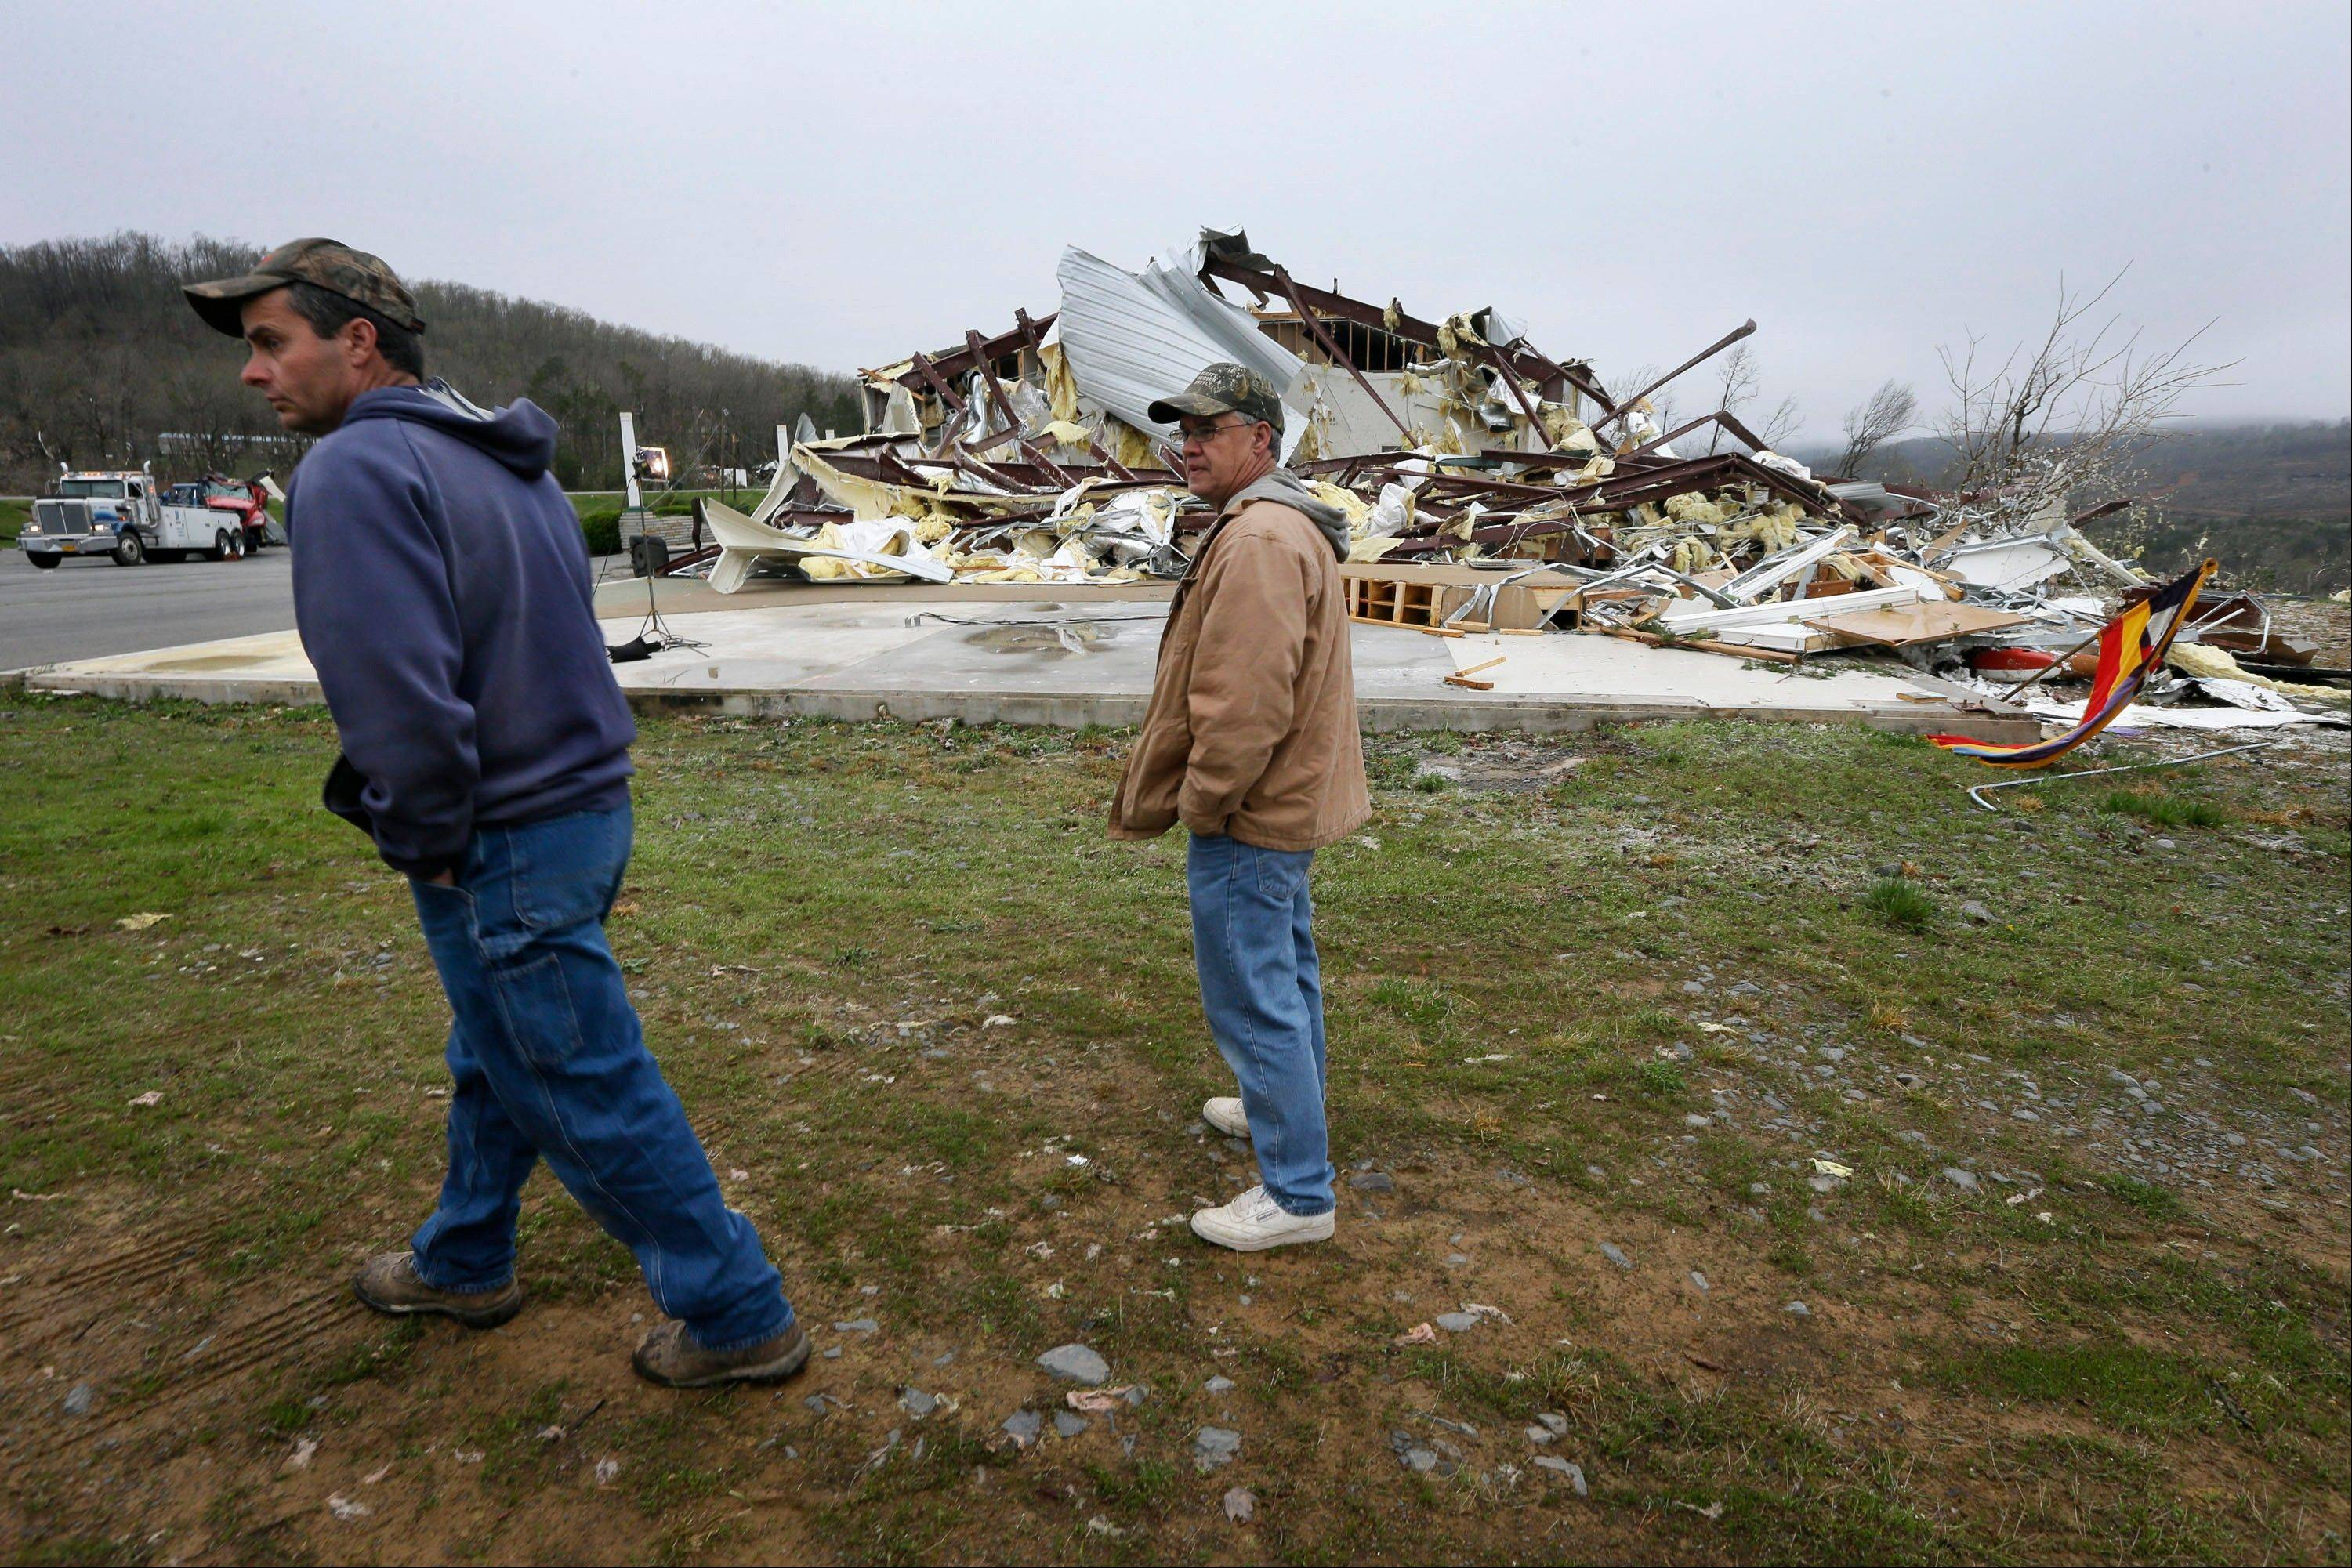 Larry Gammill, left, who attends Botkinburg Foursquare Church, and his friend Tim Parks walk from what is left of the church in Botkinburg, Ark., Thursday, April 11, 2013 after a severe storm struck the building late Wednesday. The National Weather Service is surveying areas Thursday to determine whether tornadoes or strong winds caused damage.